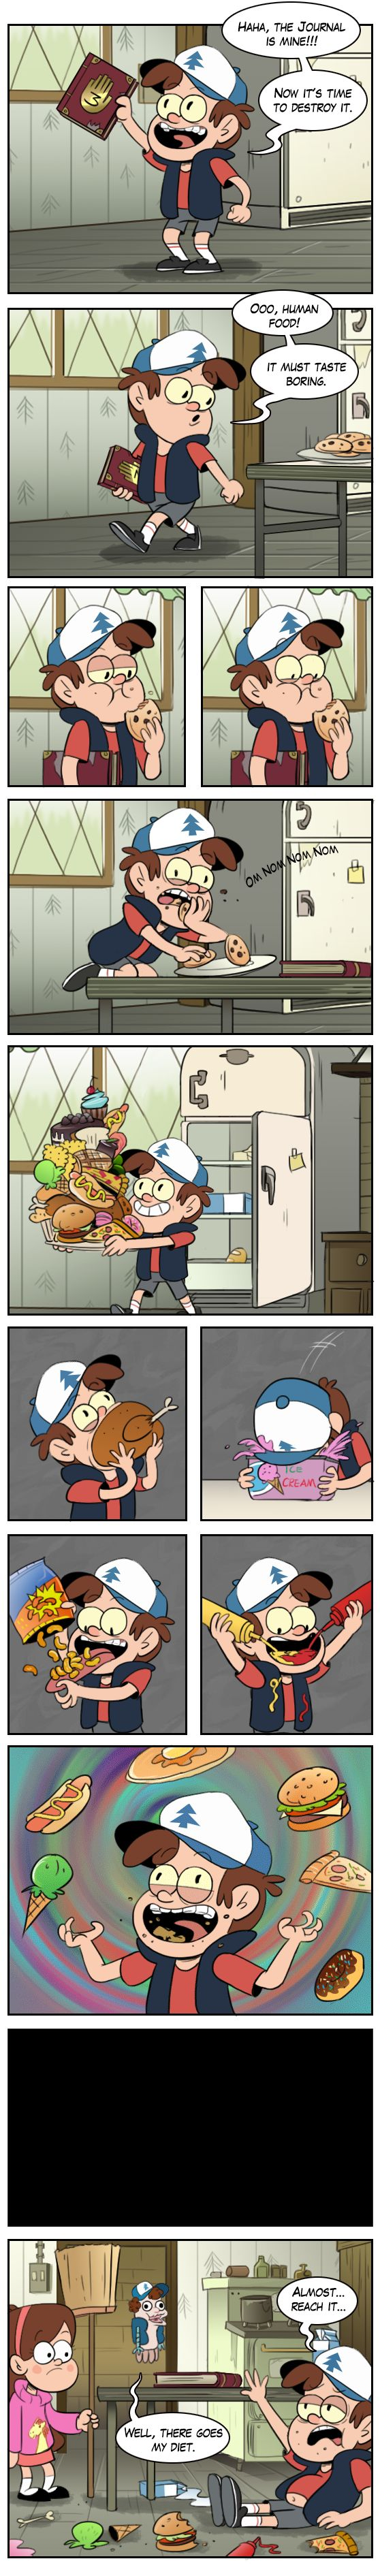 Bipper's weakness by markmak on DeviantArt ←For some reason I find this very funny #GravityFalls #Bipper #Food